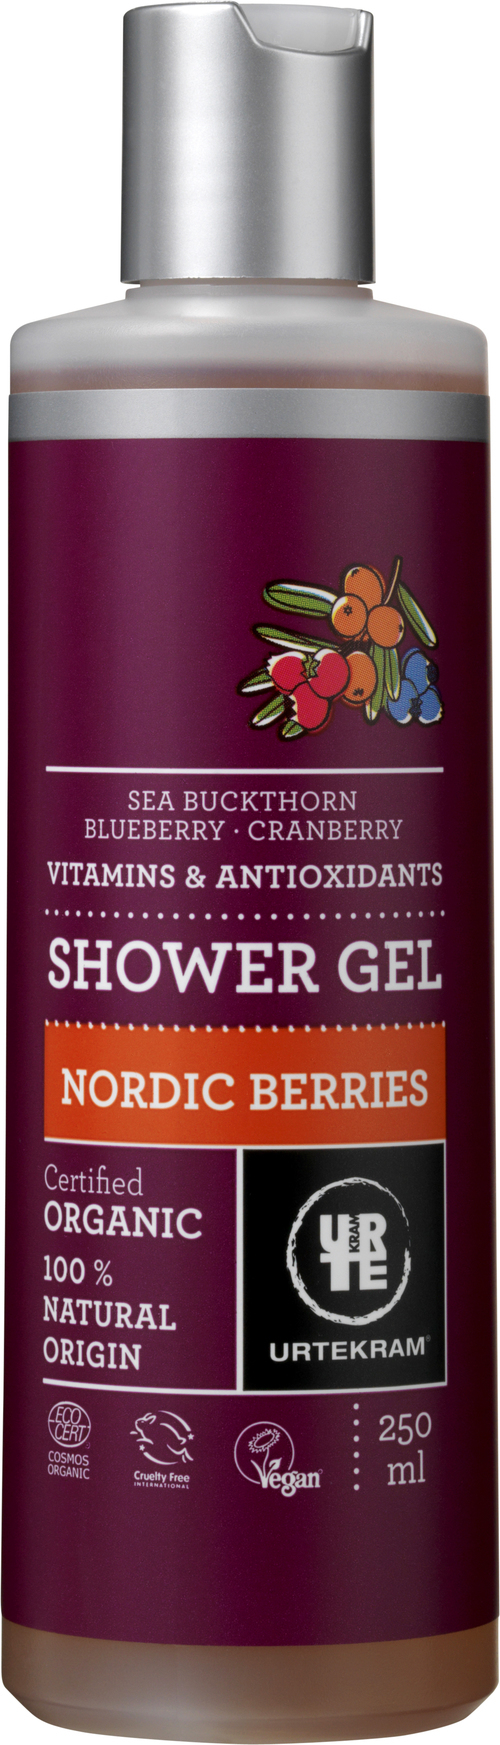 URTEKRAM Nordic Berries Shower Gel øko 0,25 l